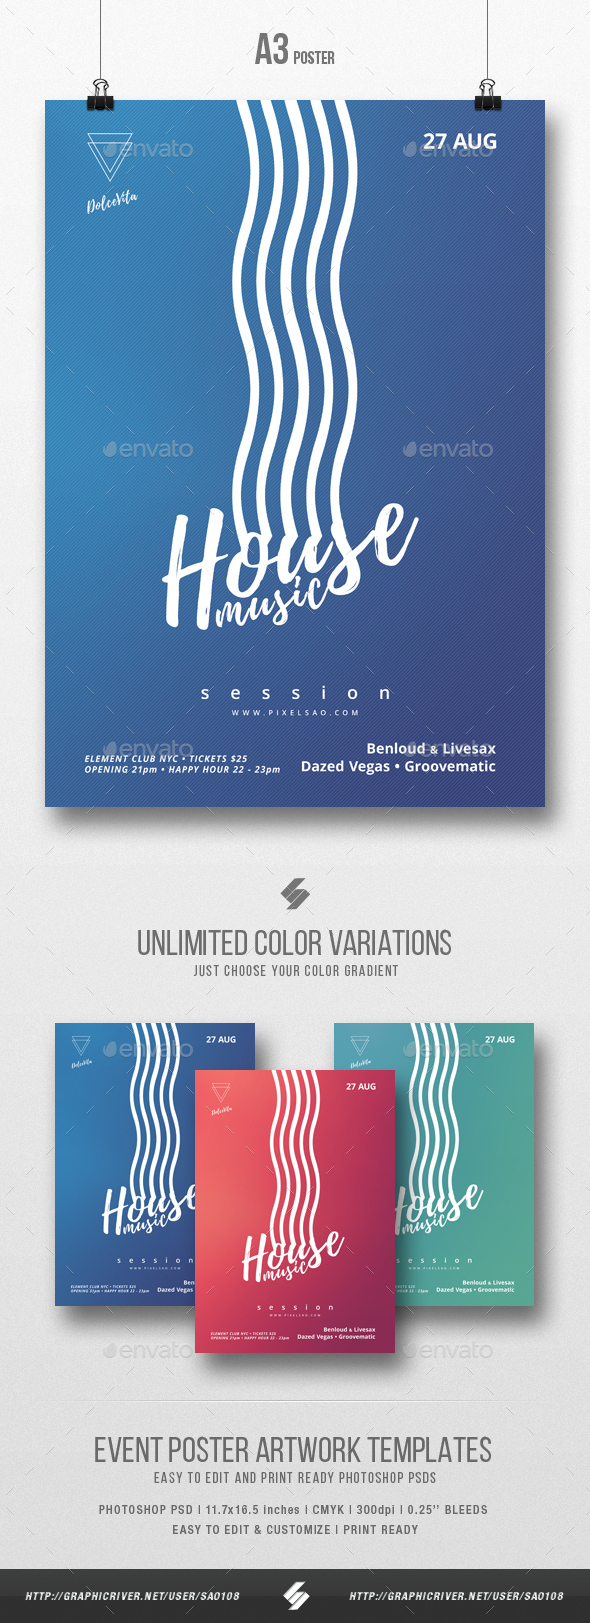 House Music Session - Minimal Flyer / Poster Template A3 - Clubs & Parties Events